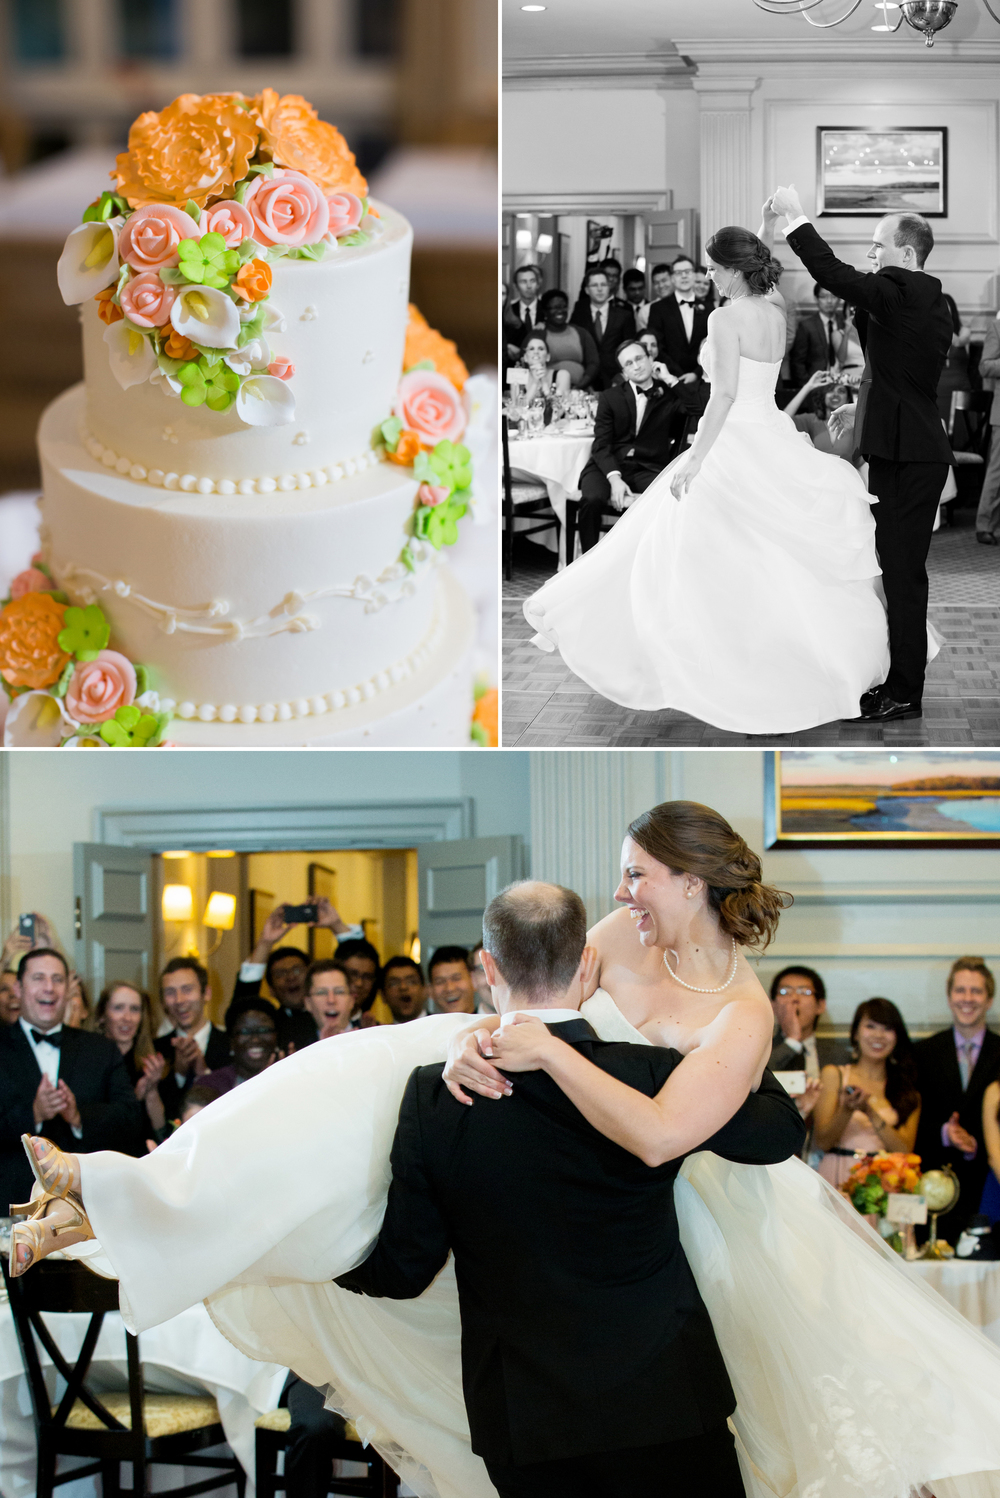 HarvardFacultyClubWedding_BostonMAFallWedding_MichelleGirardPhotography42.jpg